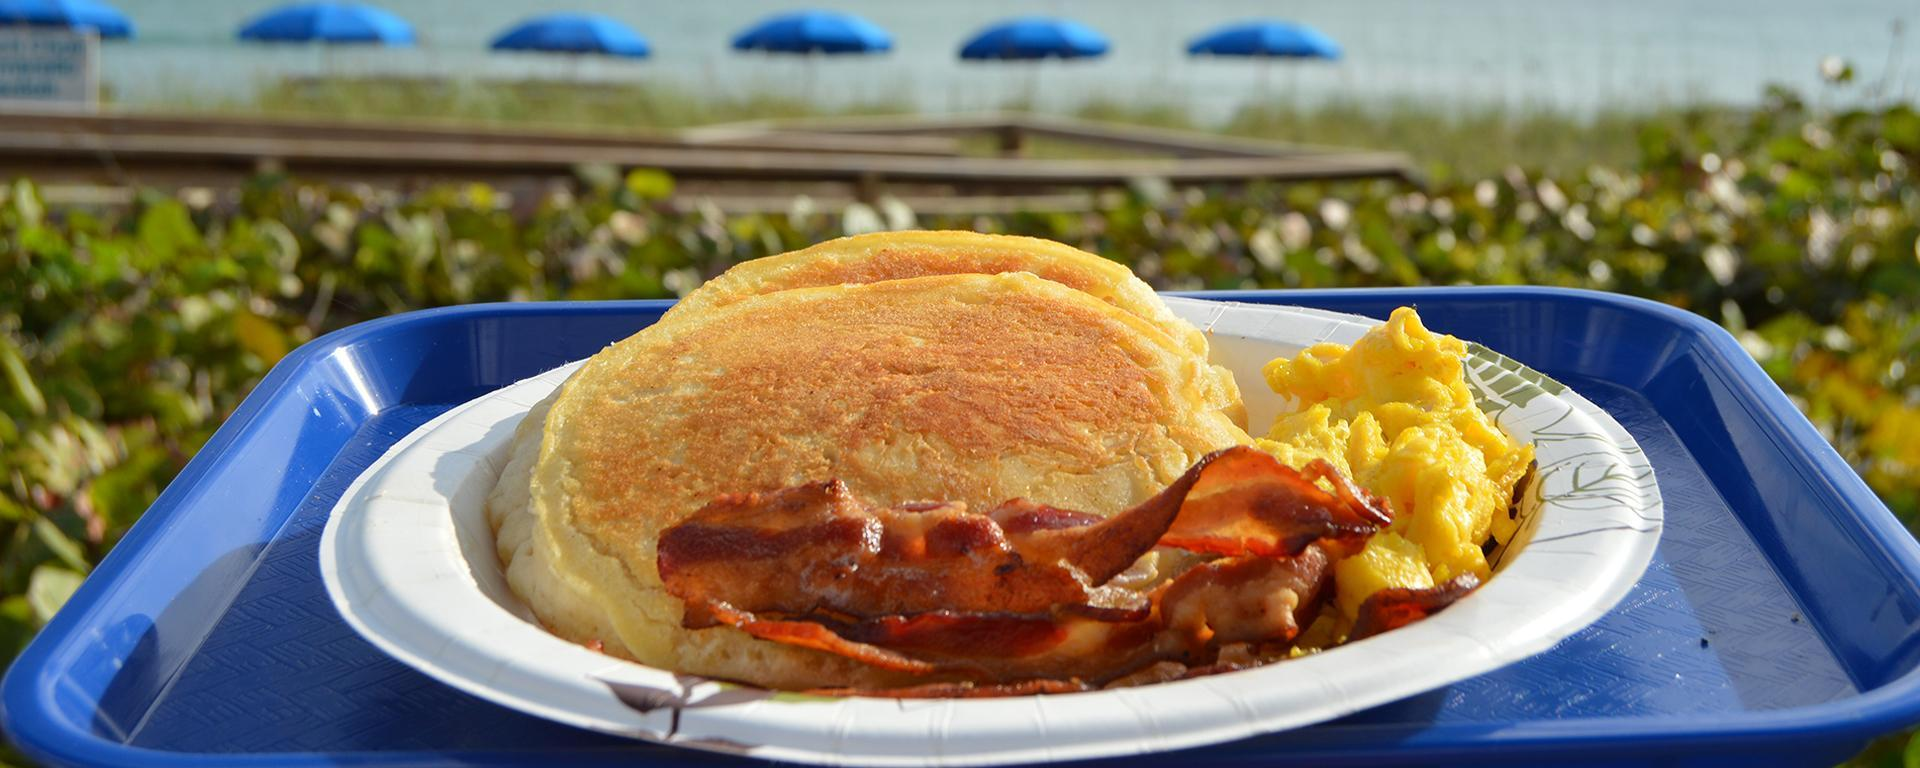 A plate of pancakes, eggs and bacon from Sand Dune Cafe.